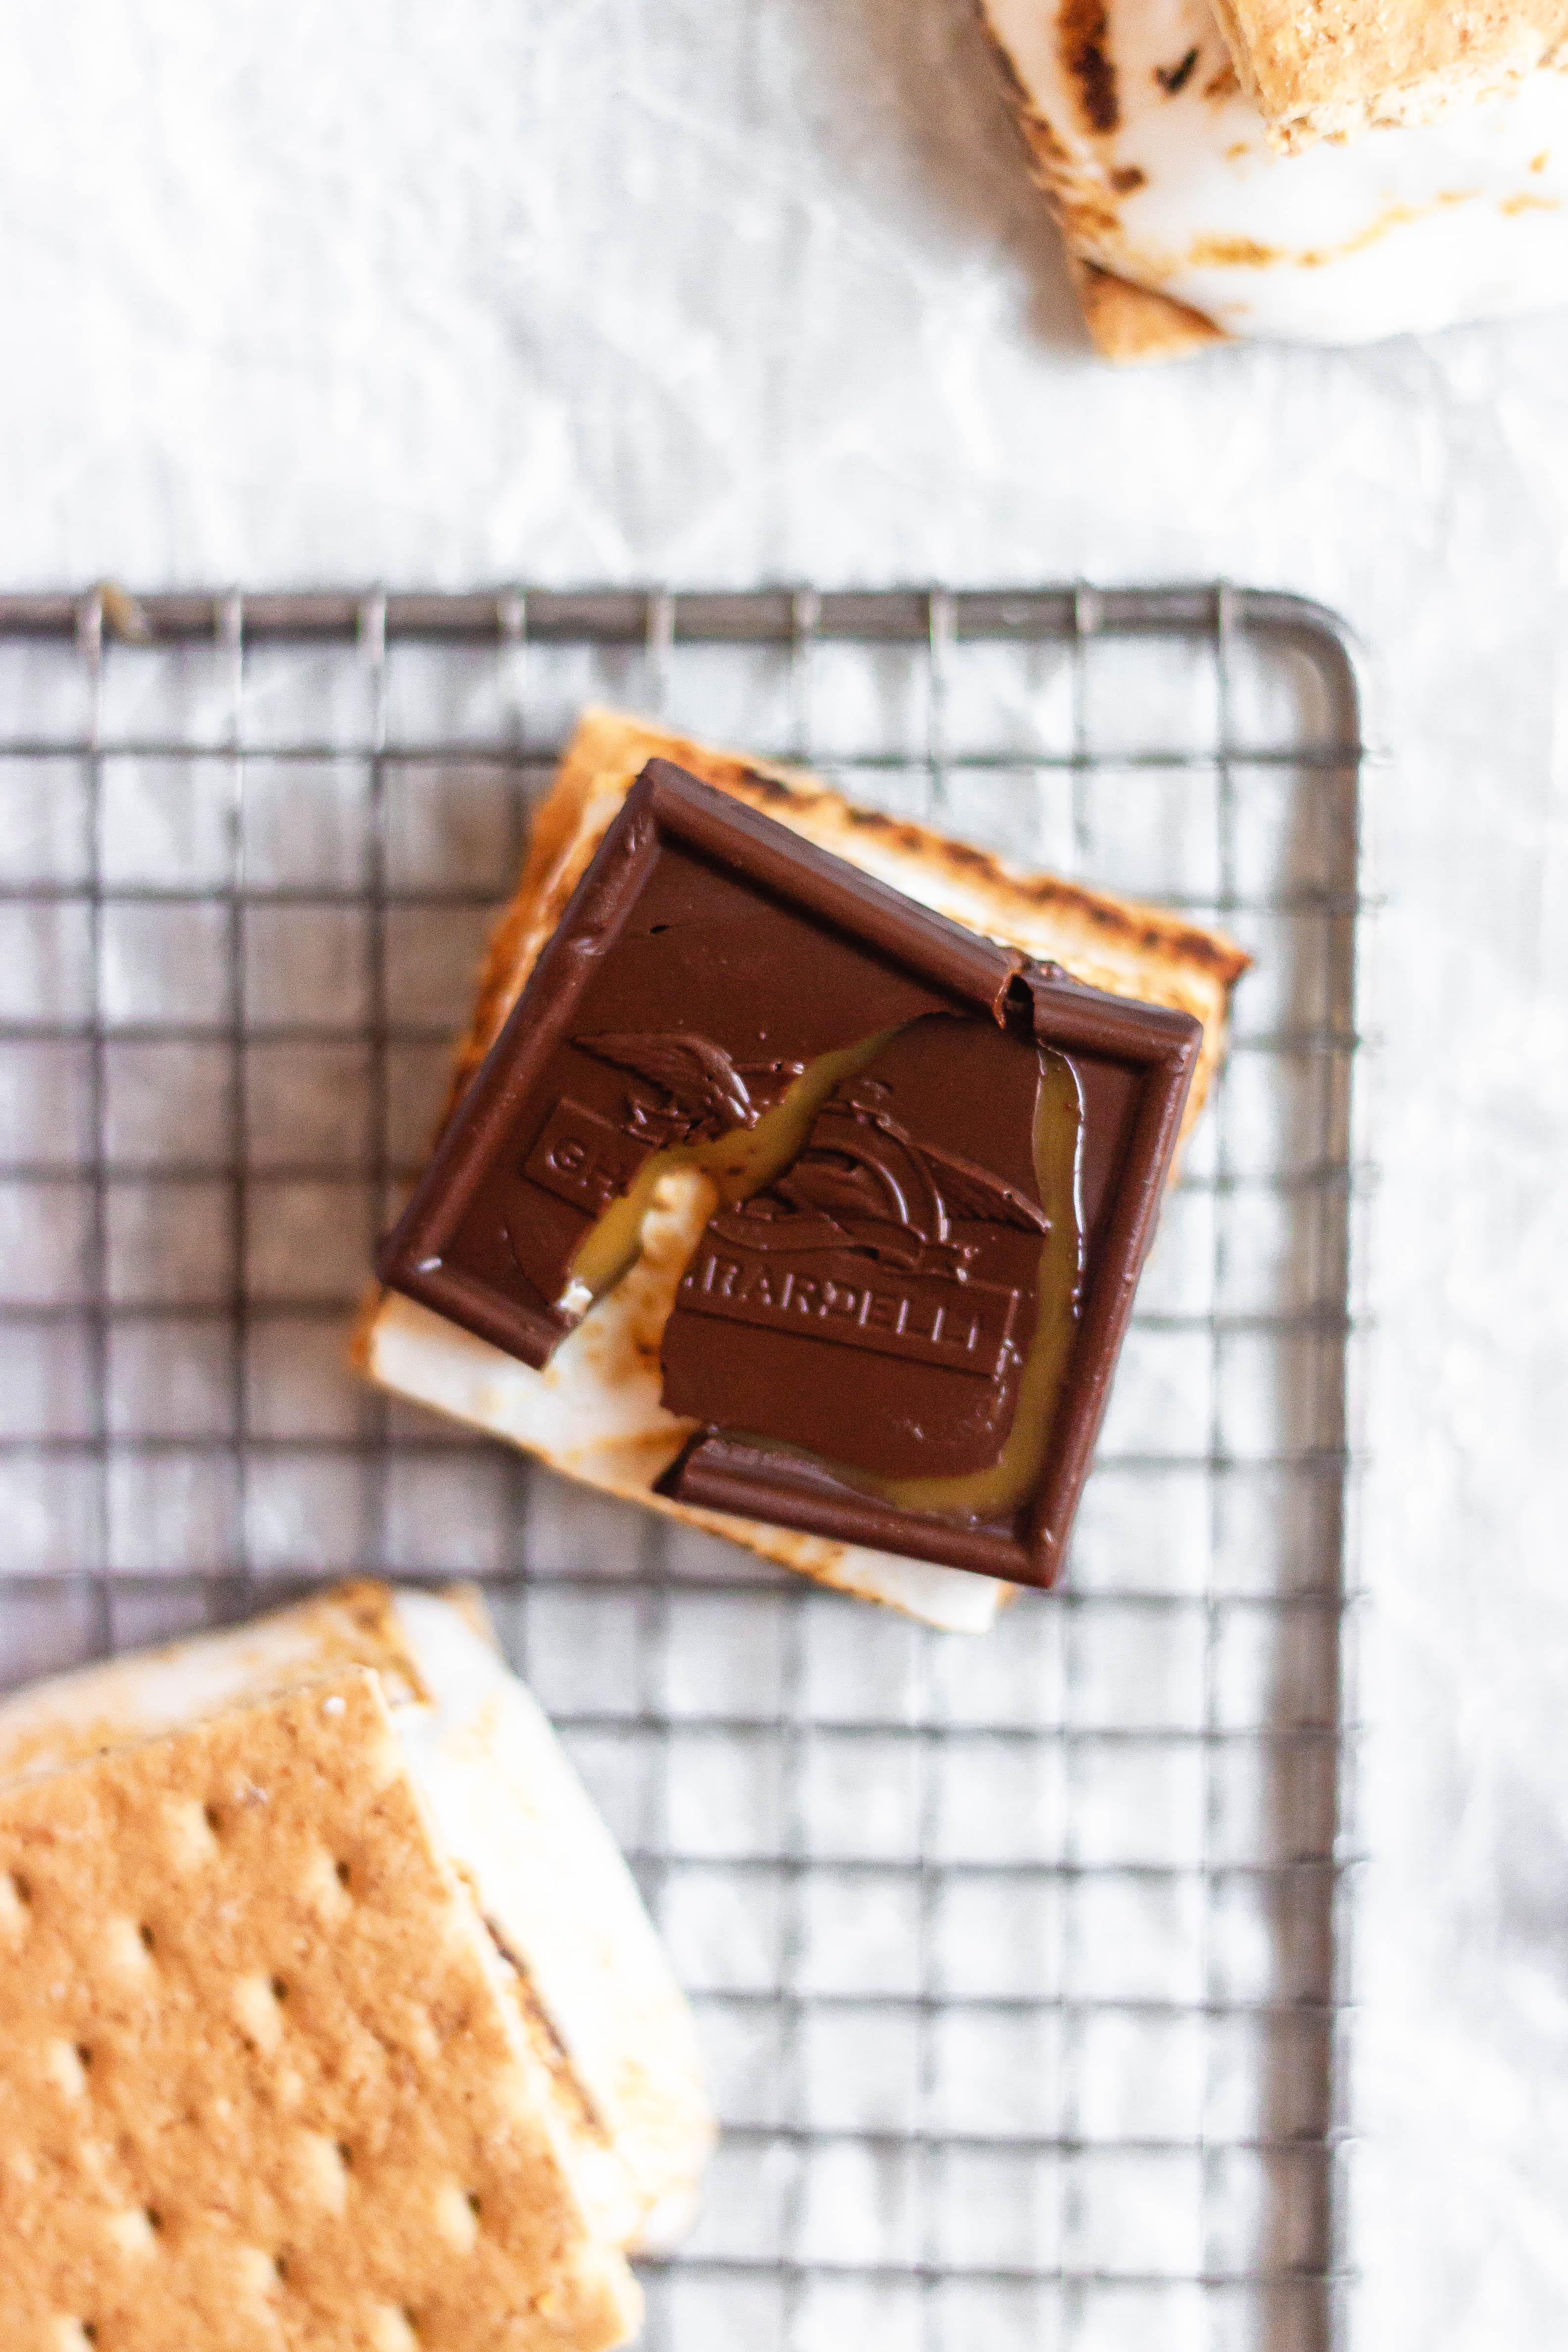 A s'more with the chocolate exposed